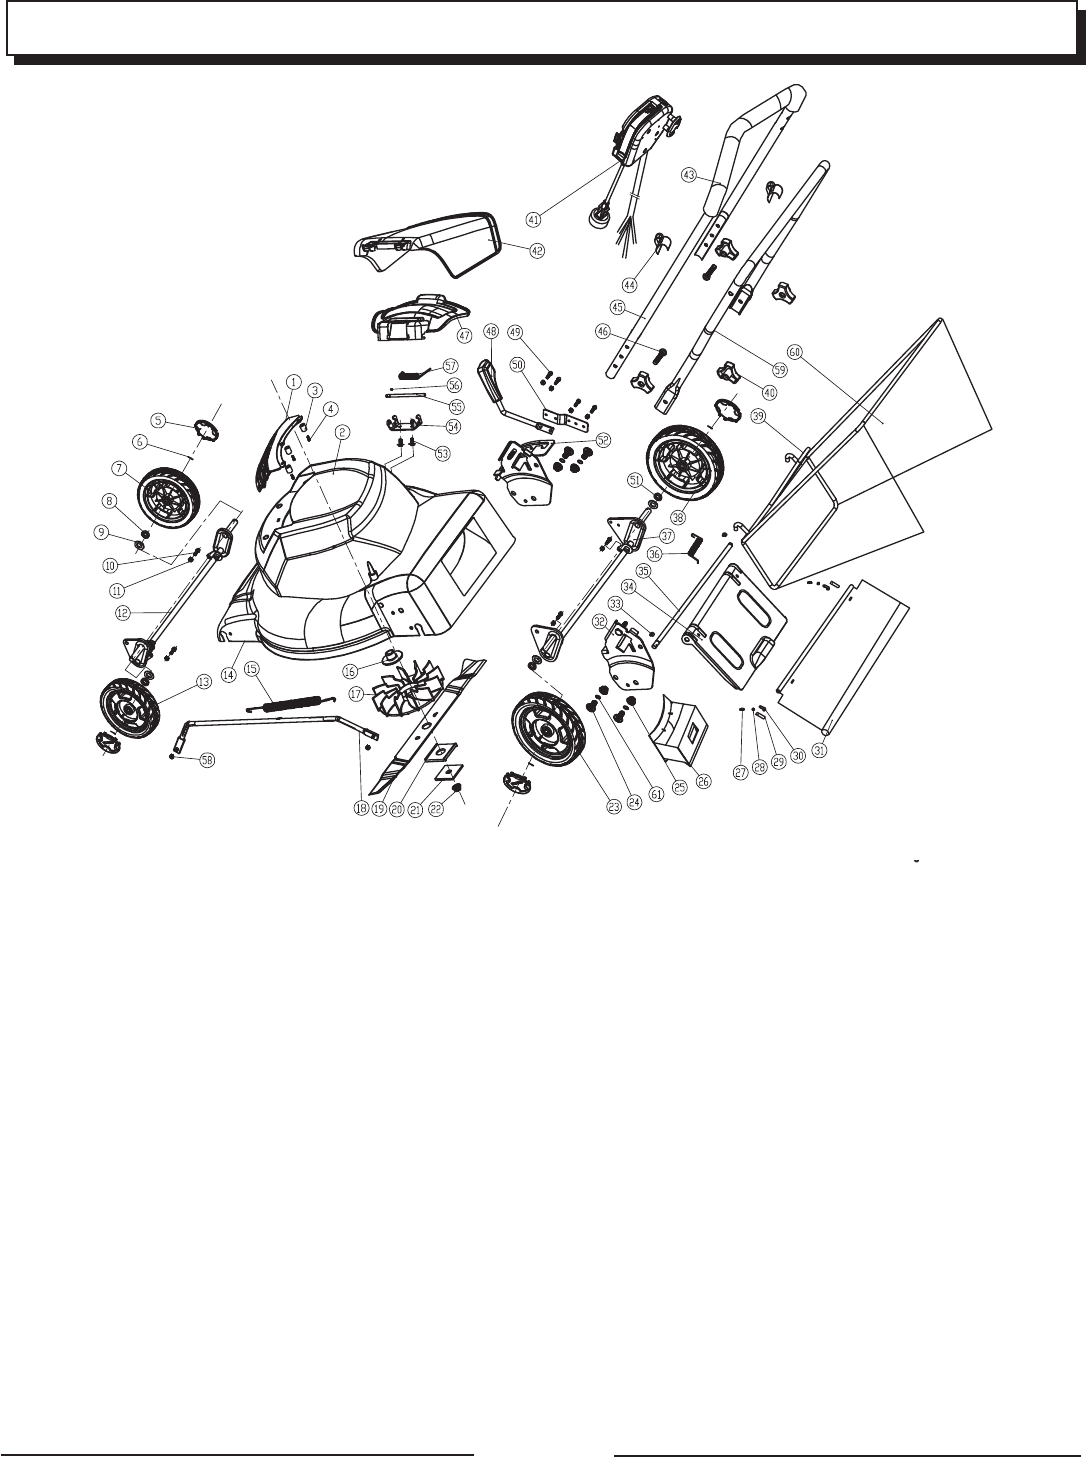 Page 19 of Homelite Lawn Mower UT13218 User Guide